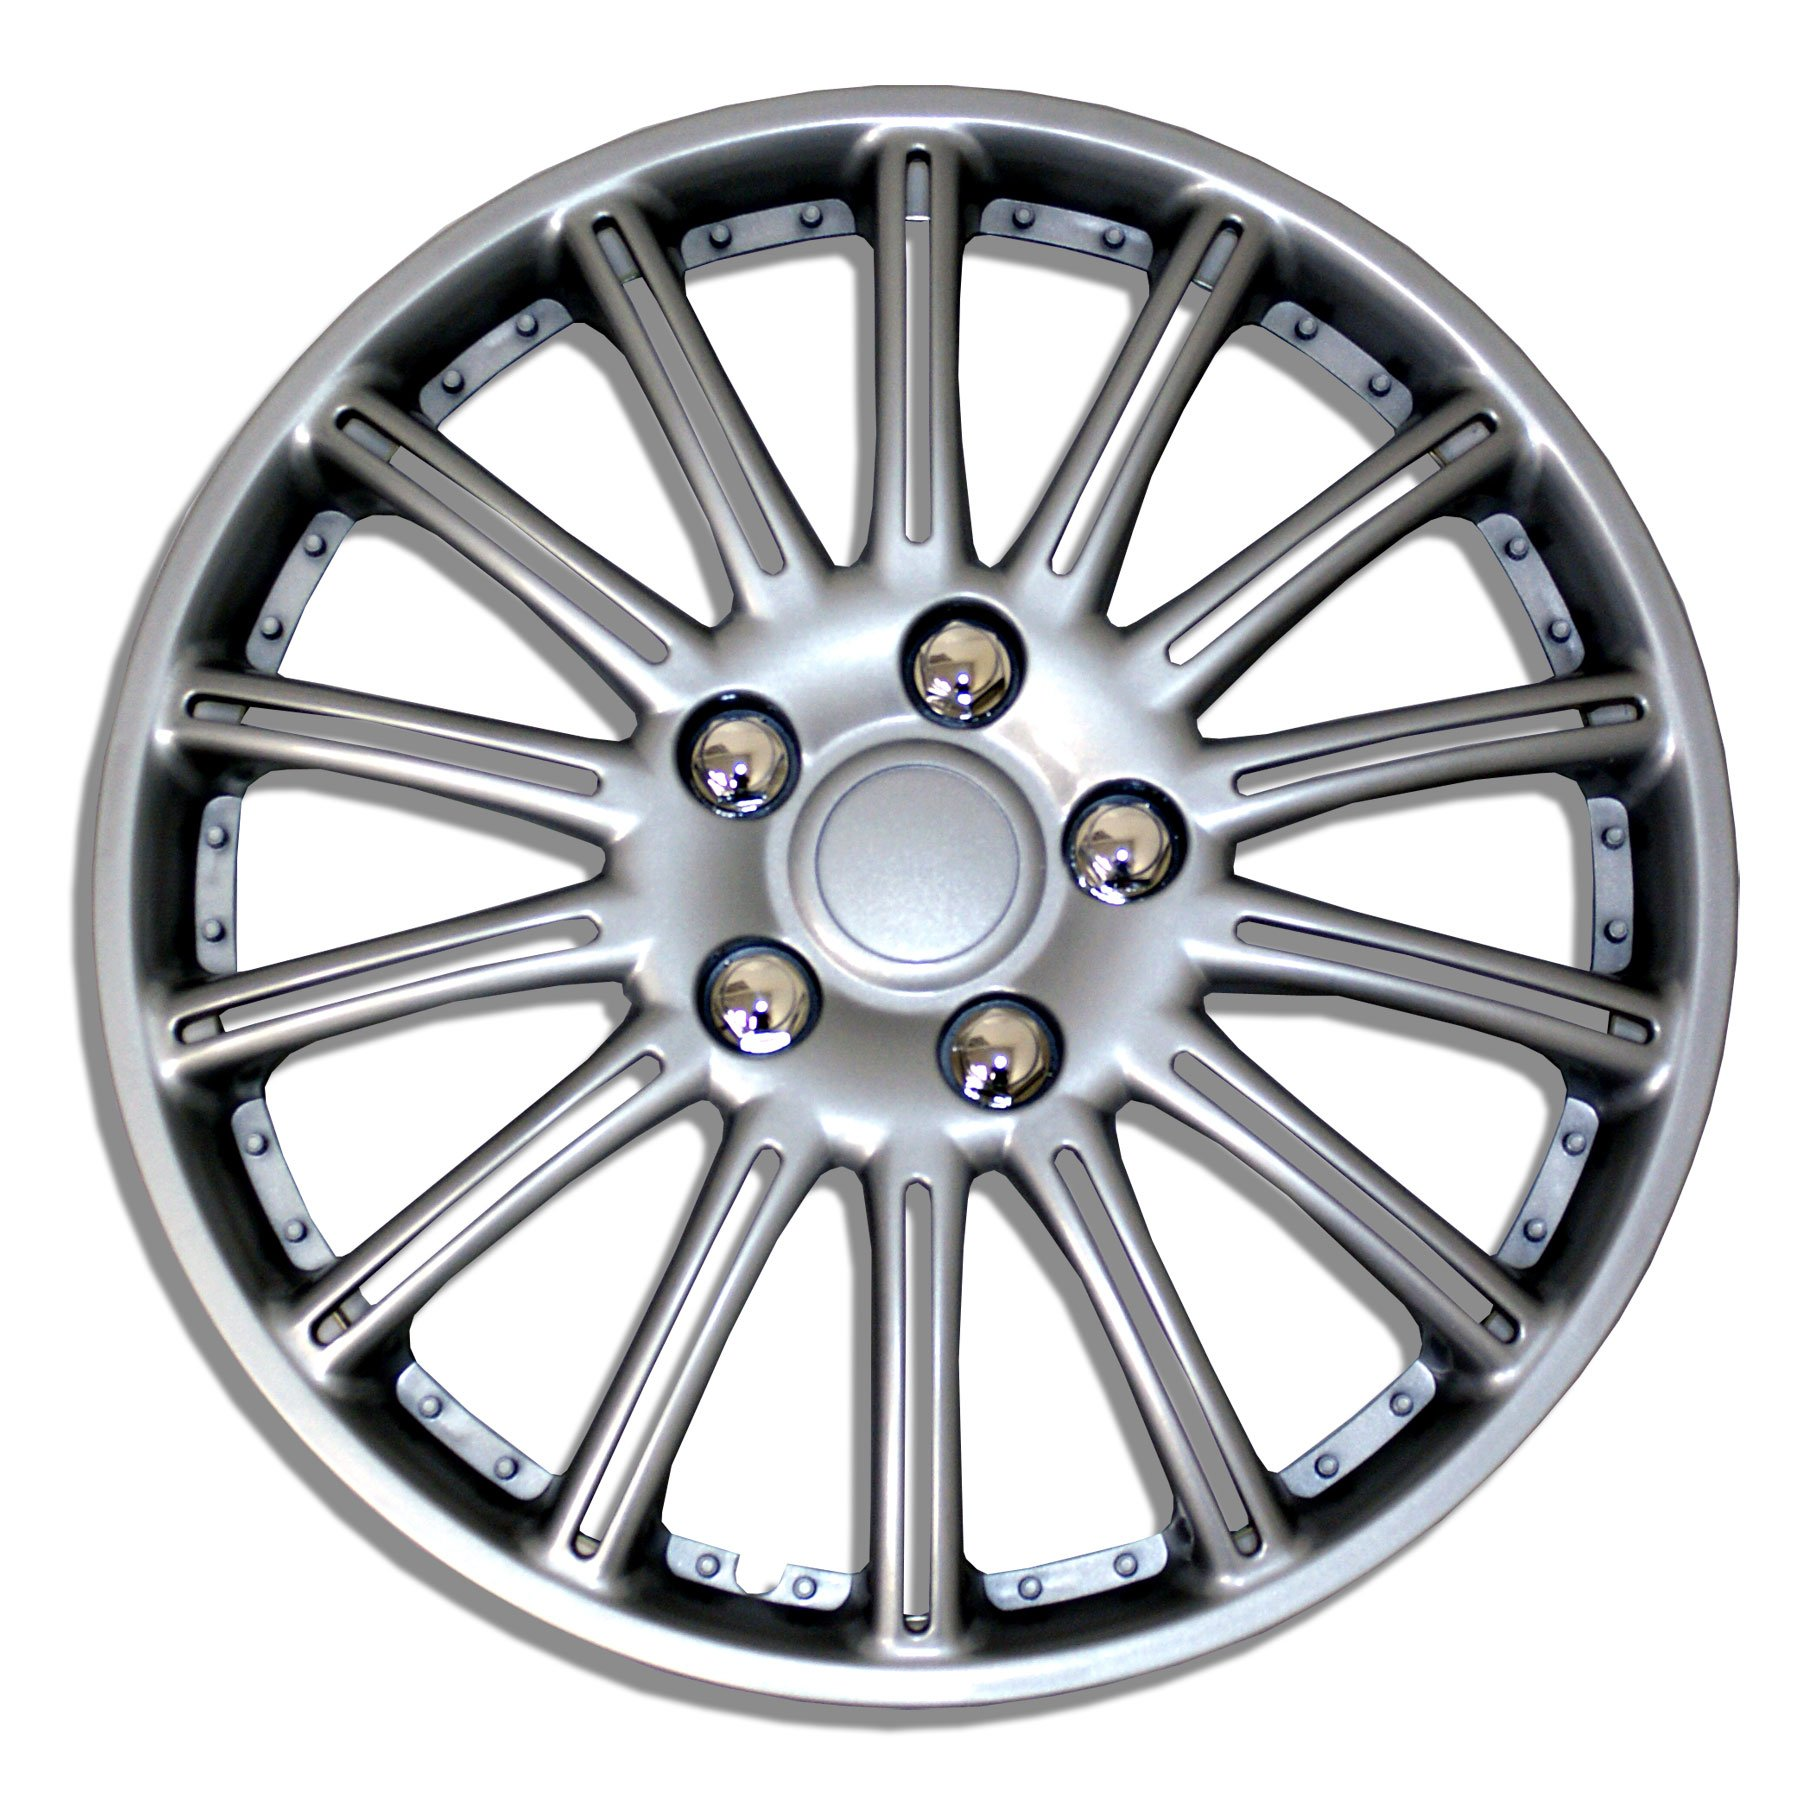 TuningPros WSC-032S15 Hubcaps Wheel Skin Cover 15-Inches Silver Set of 4